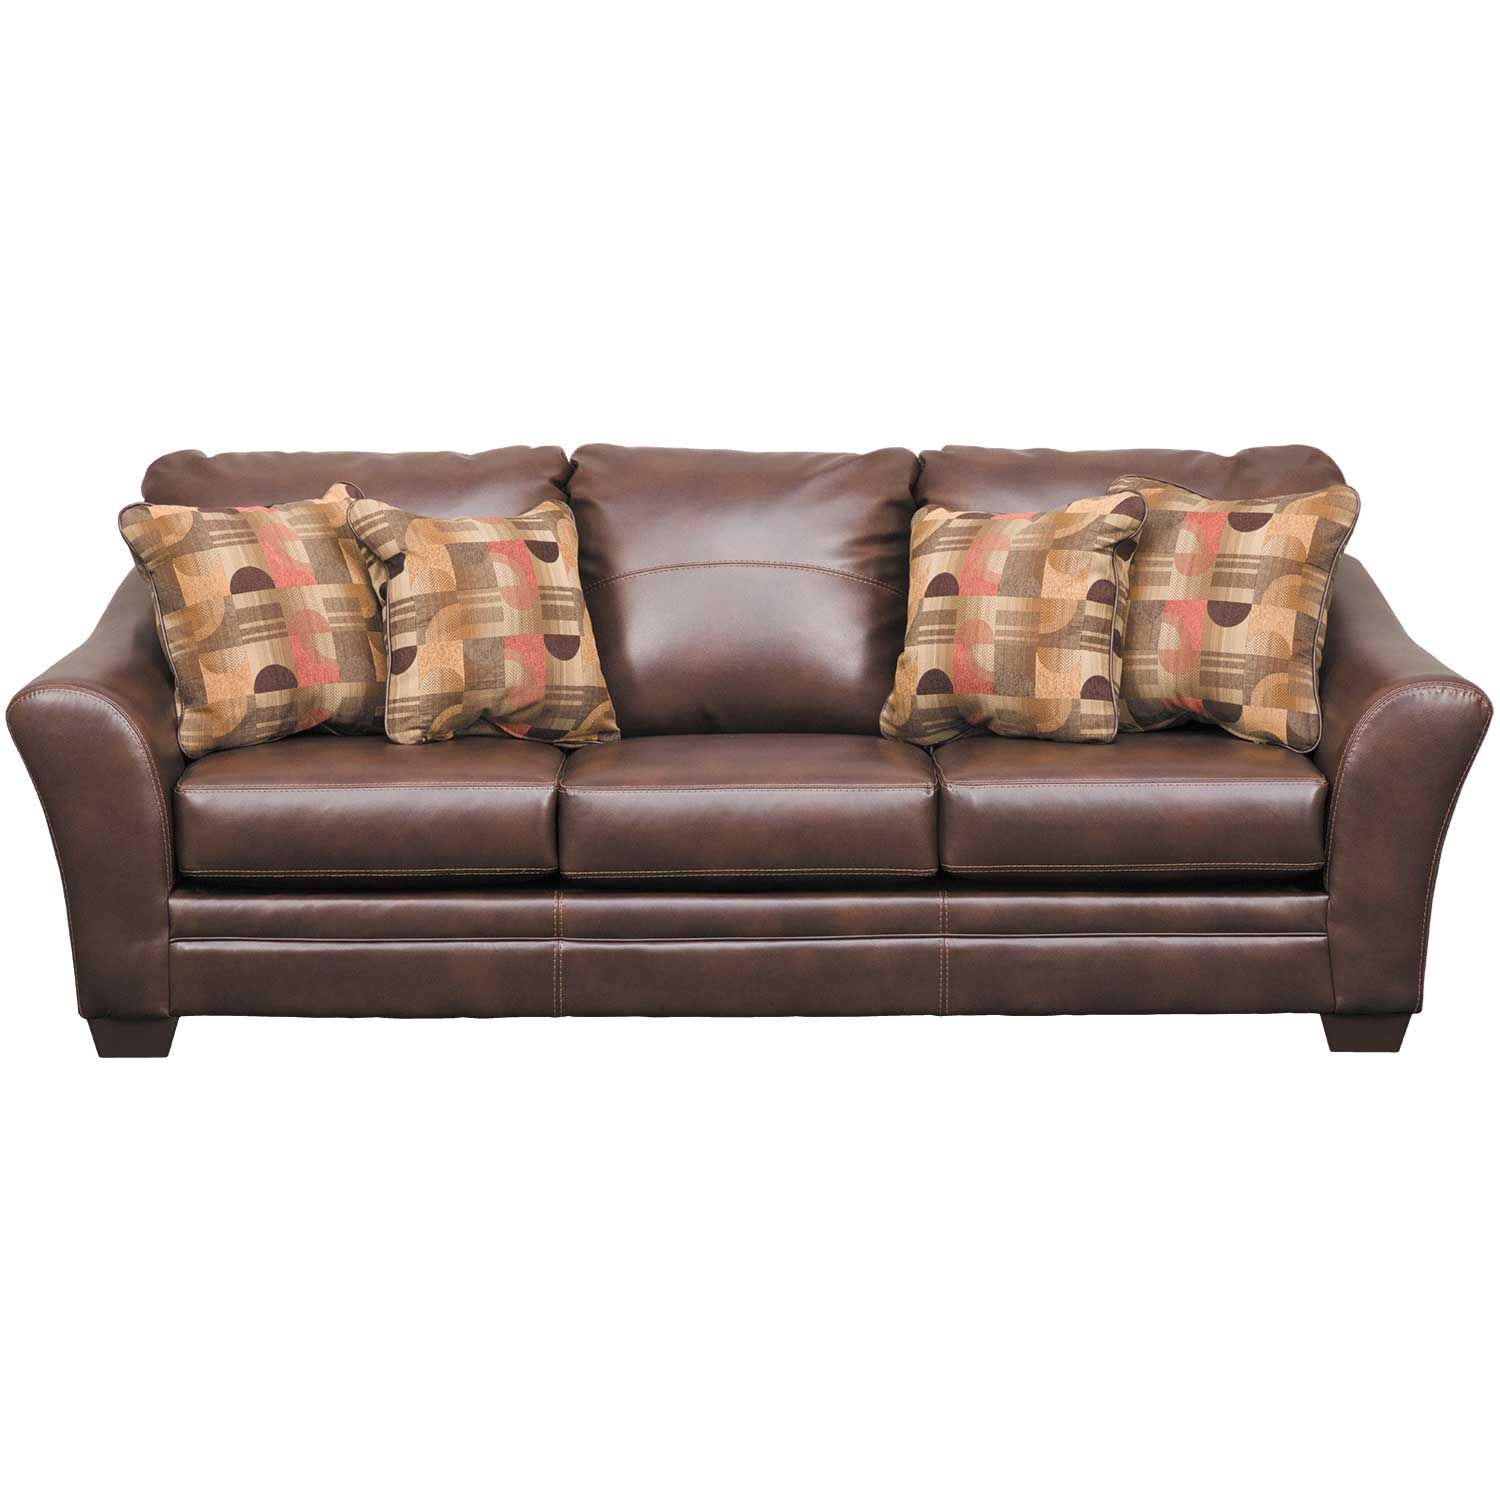 Picture Of Del Rio Bonded Leather Sofa